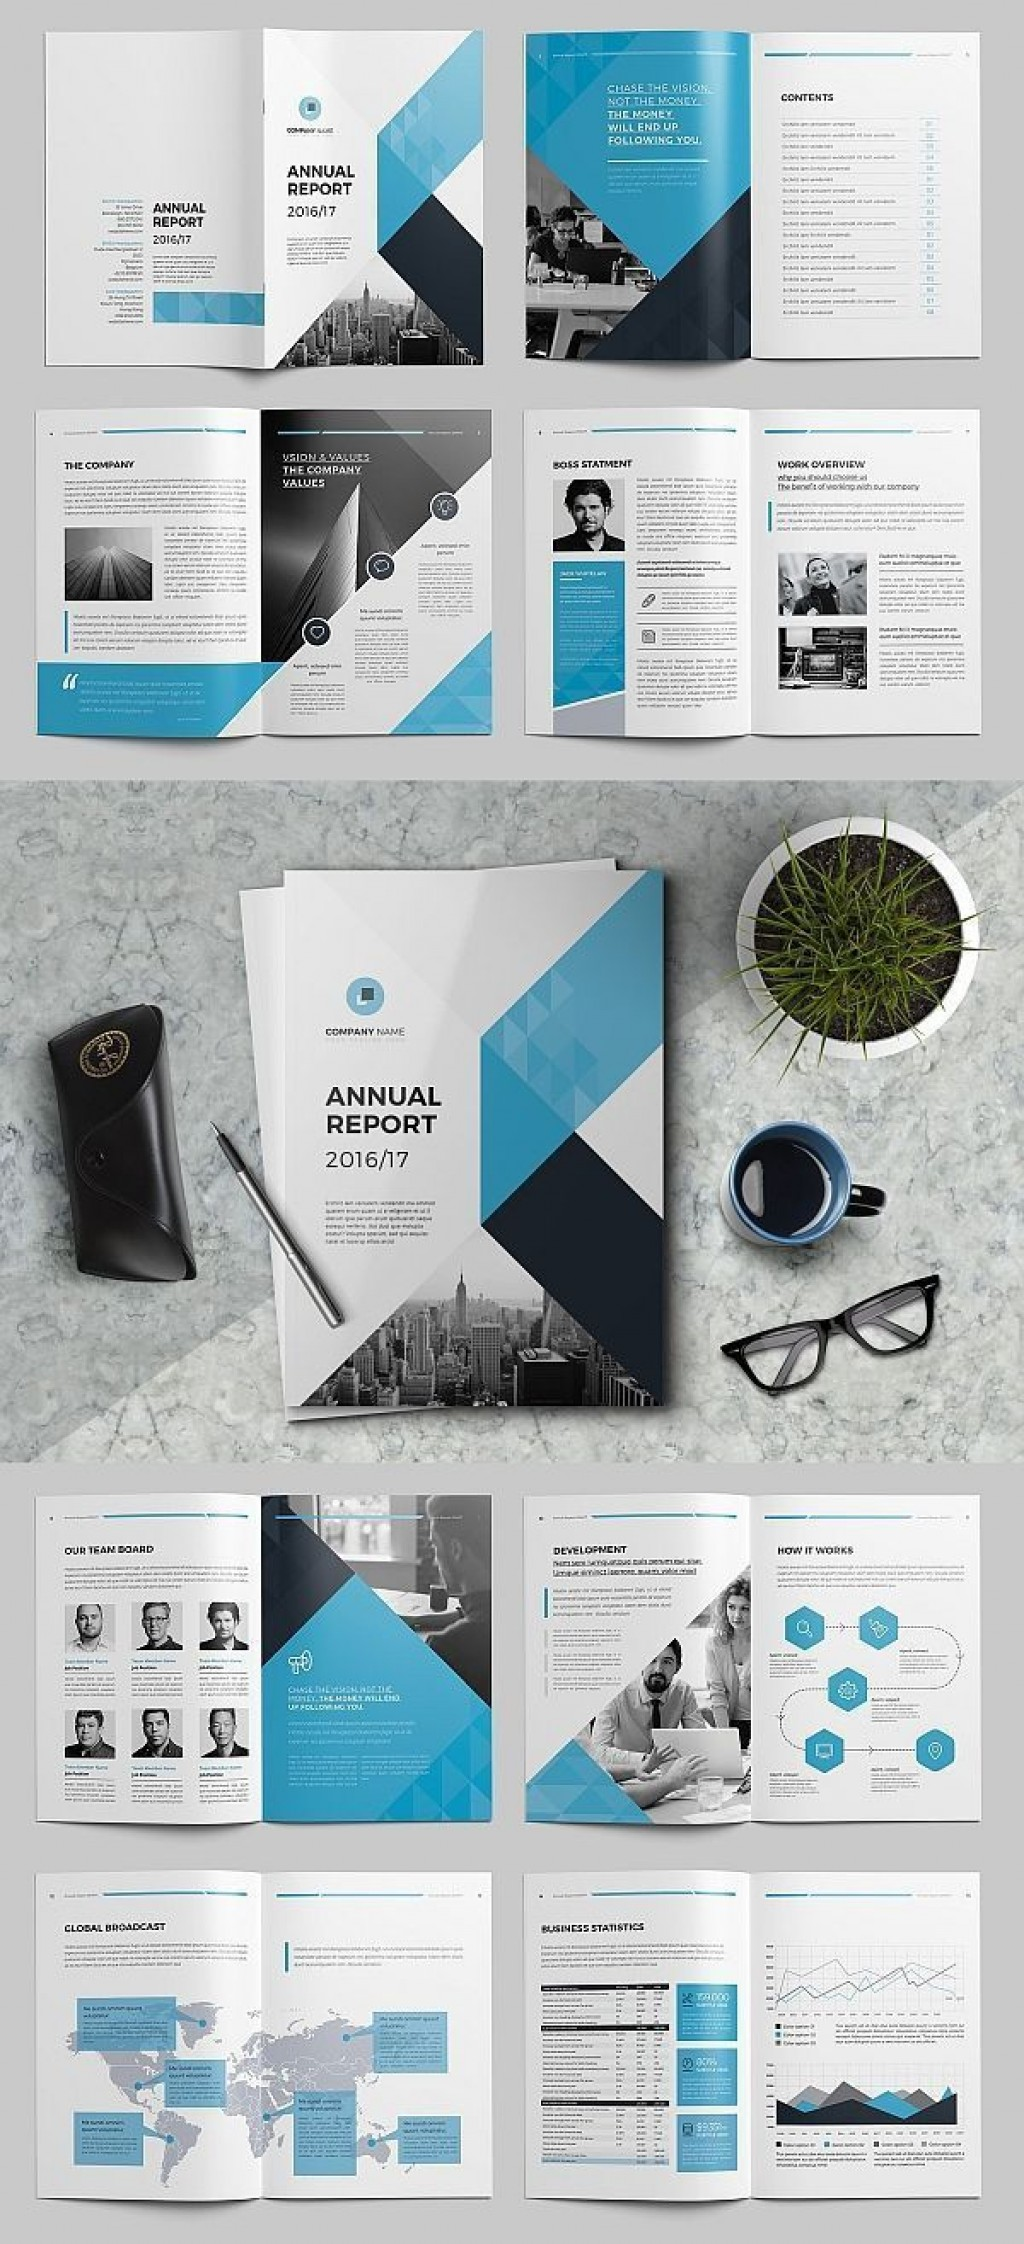 008 Fascinating Annual Report Design Template Indesign Photo  Free DownloadLarge